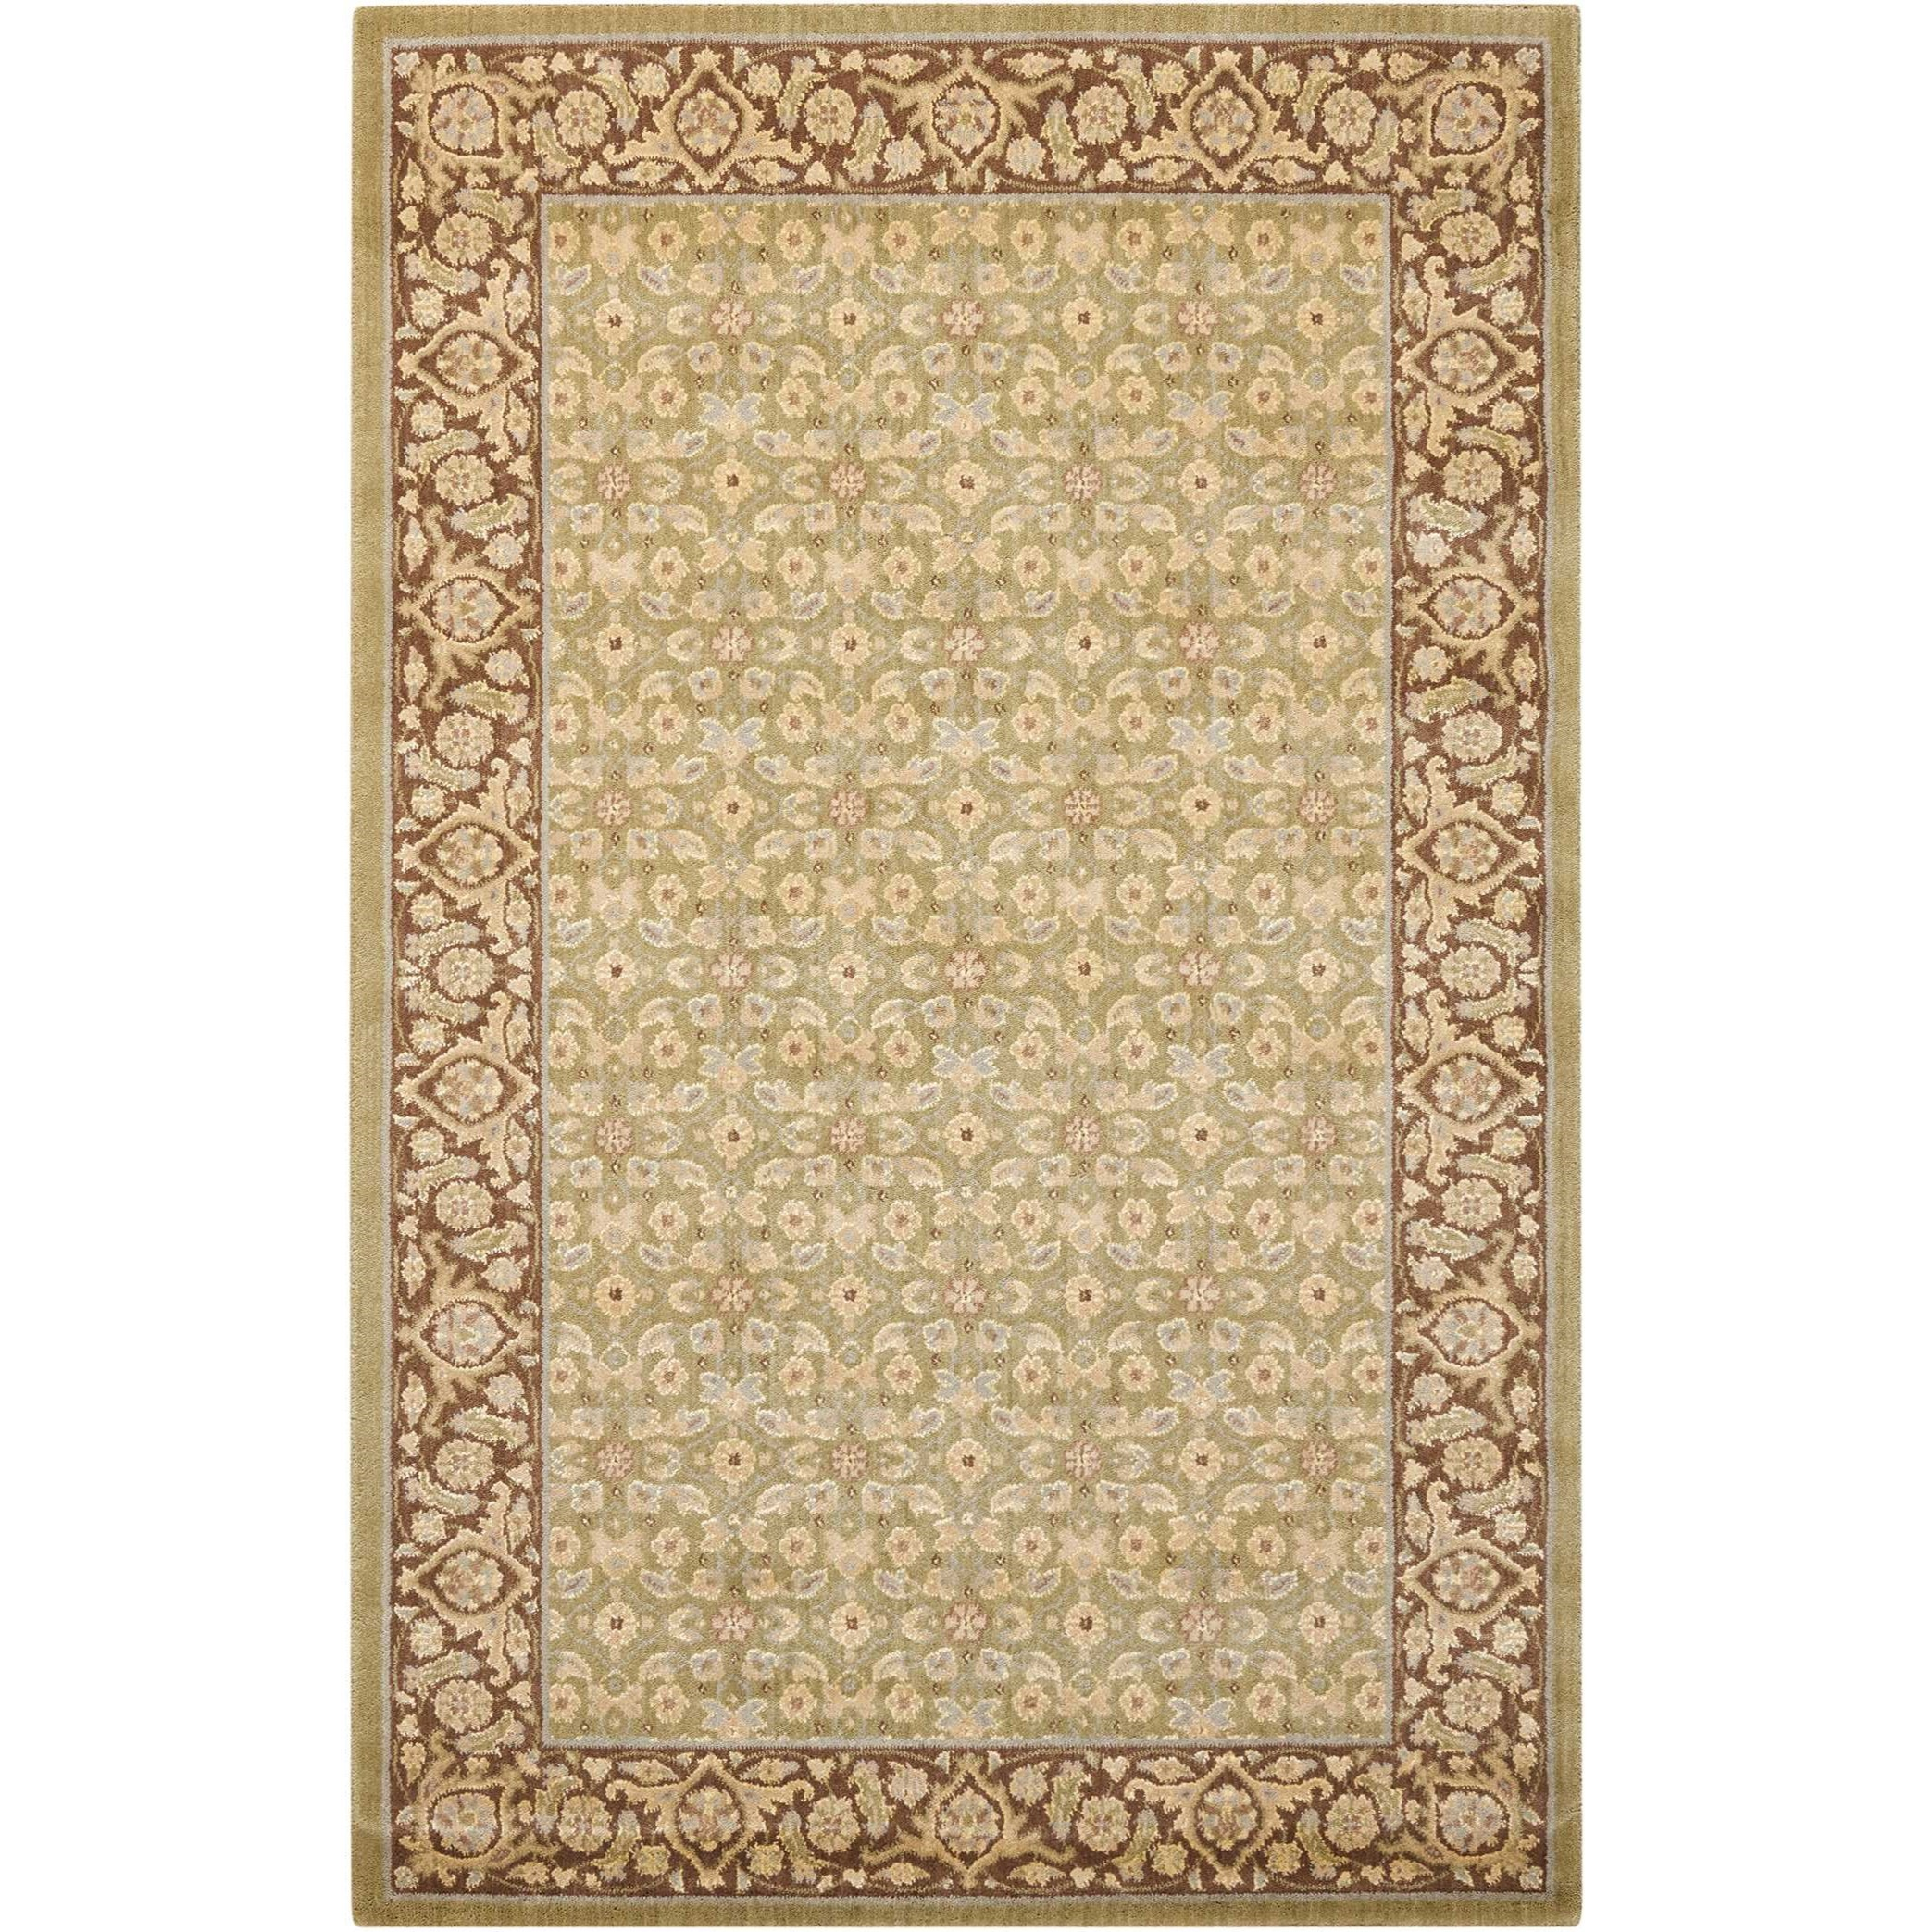 "Nourison Persian Empire 9'6"" x 13' Green Rectangle Rug - Item Number: PE26 GRE 96X13"